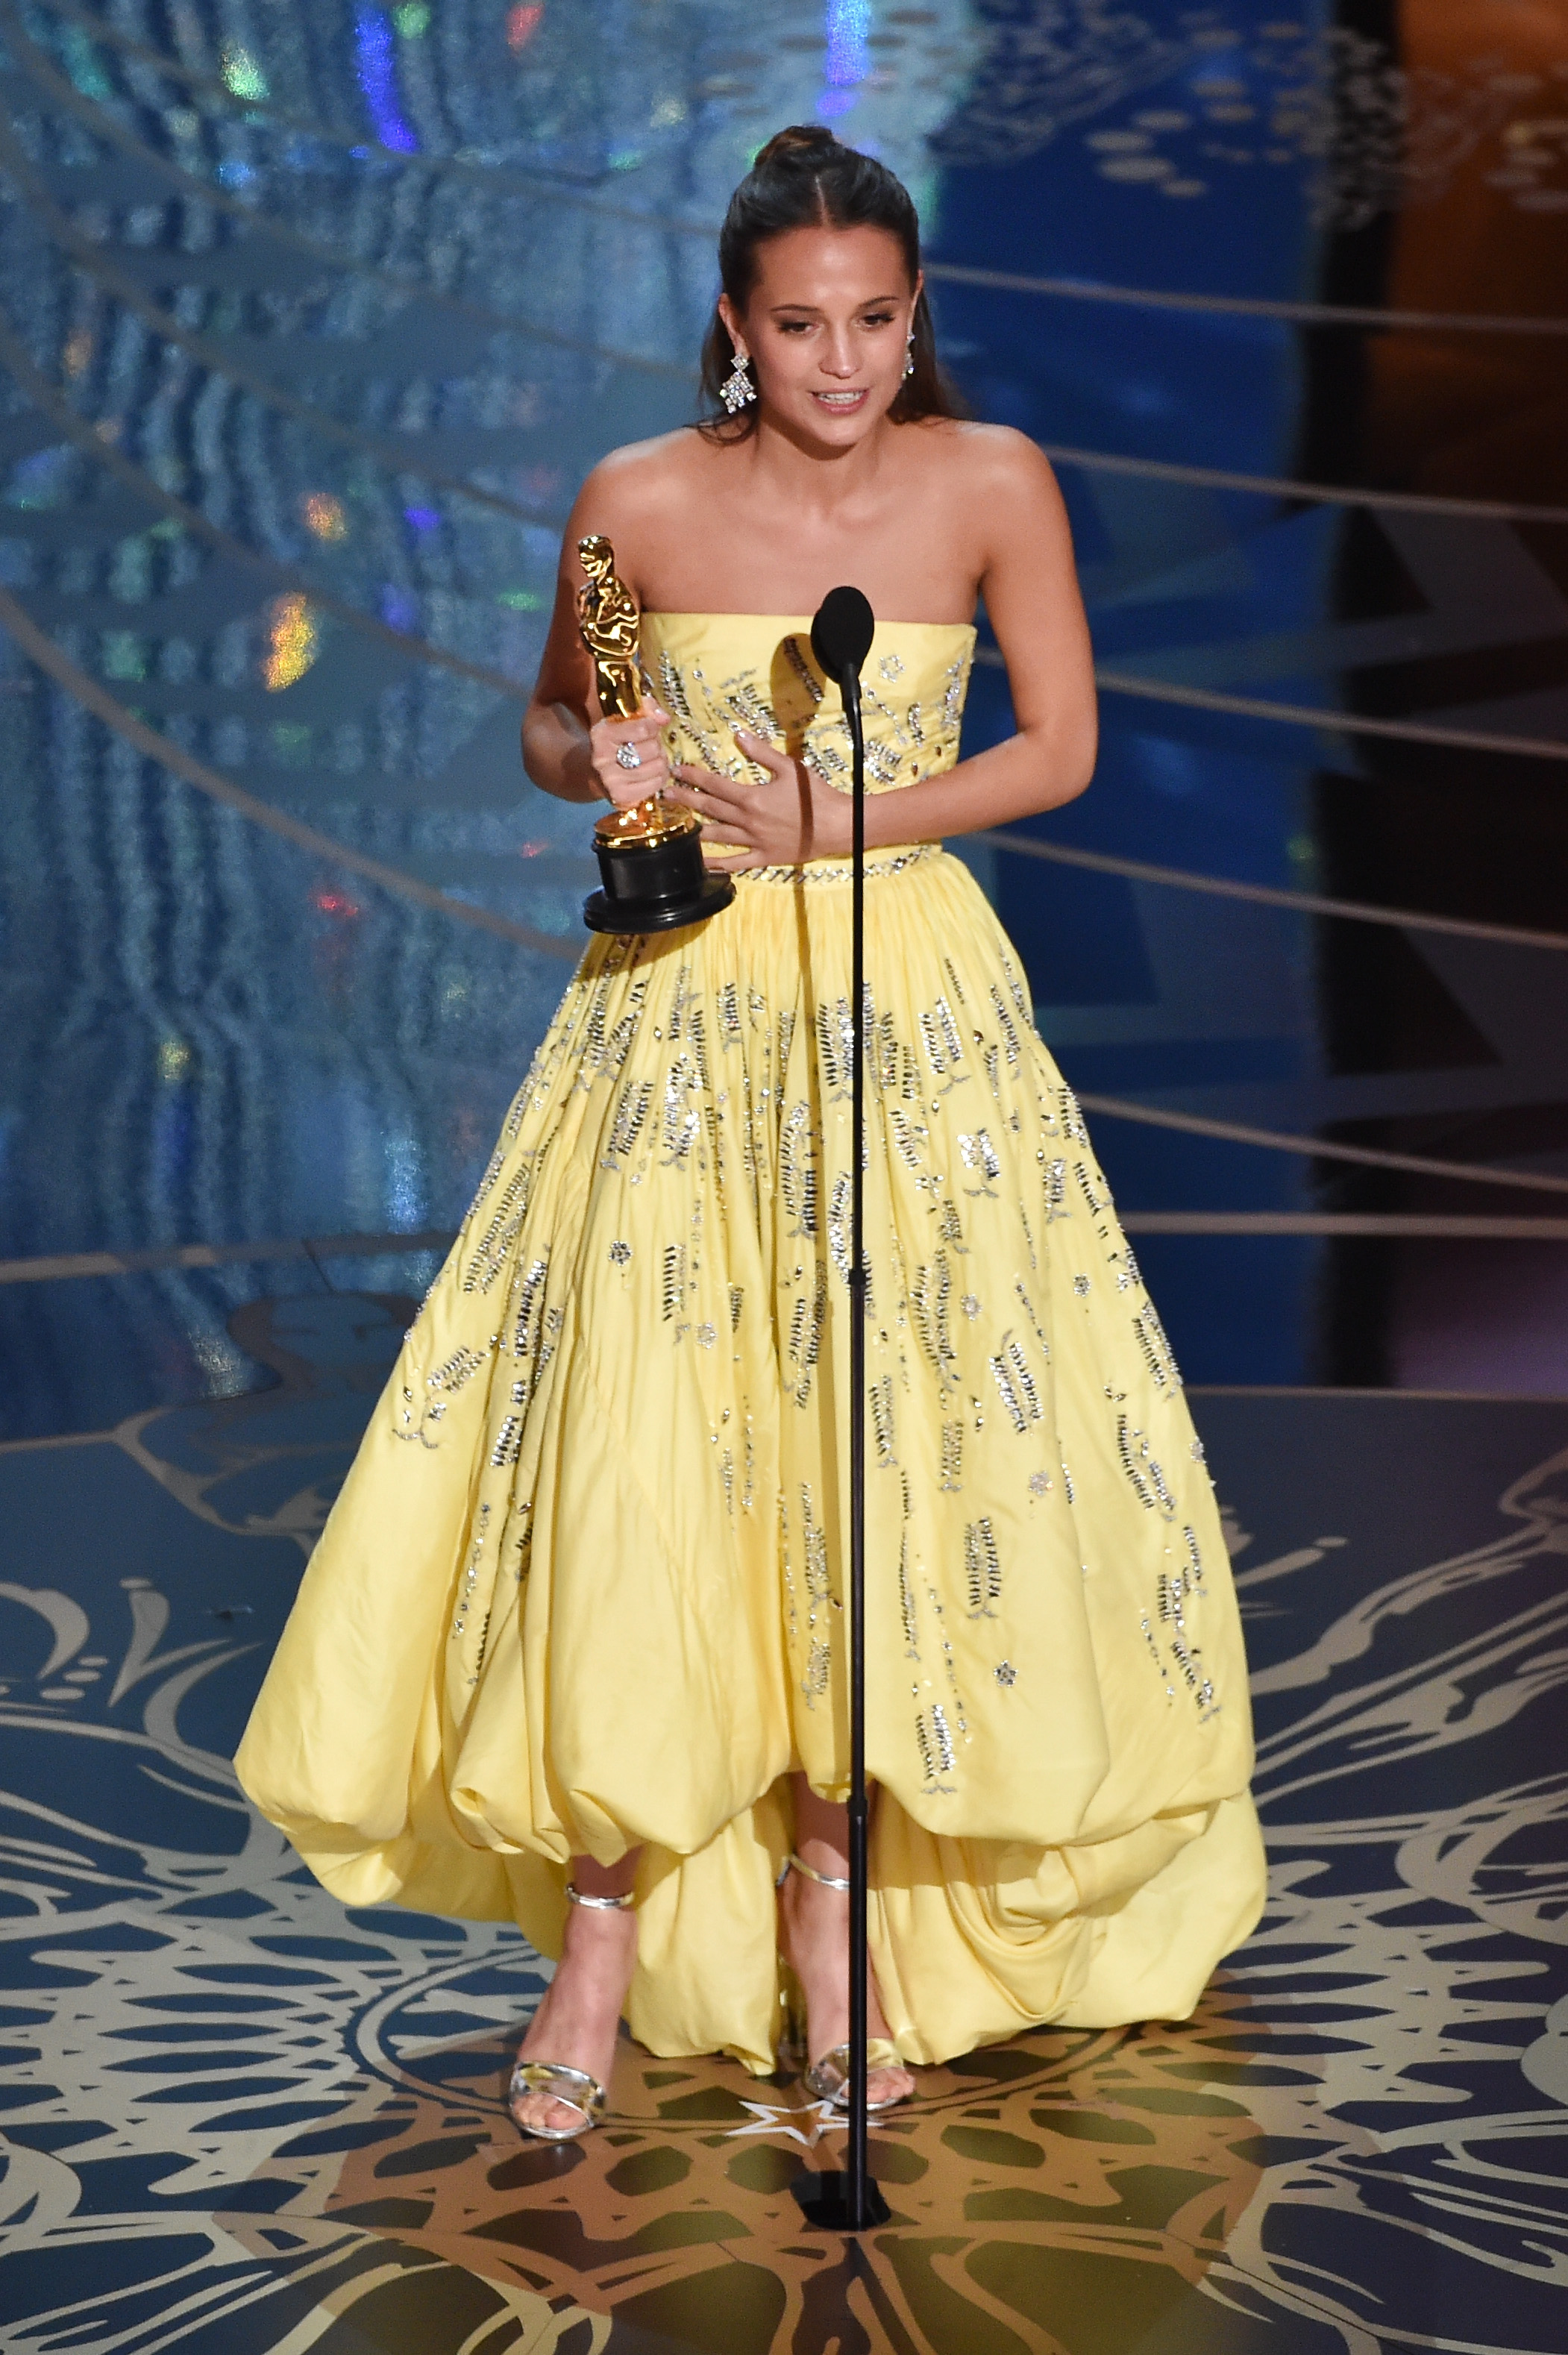 Alicia Vikander Is A 2016 Oscar Winner For Actress In A Supporting Role on academy award trophy